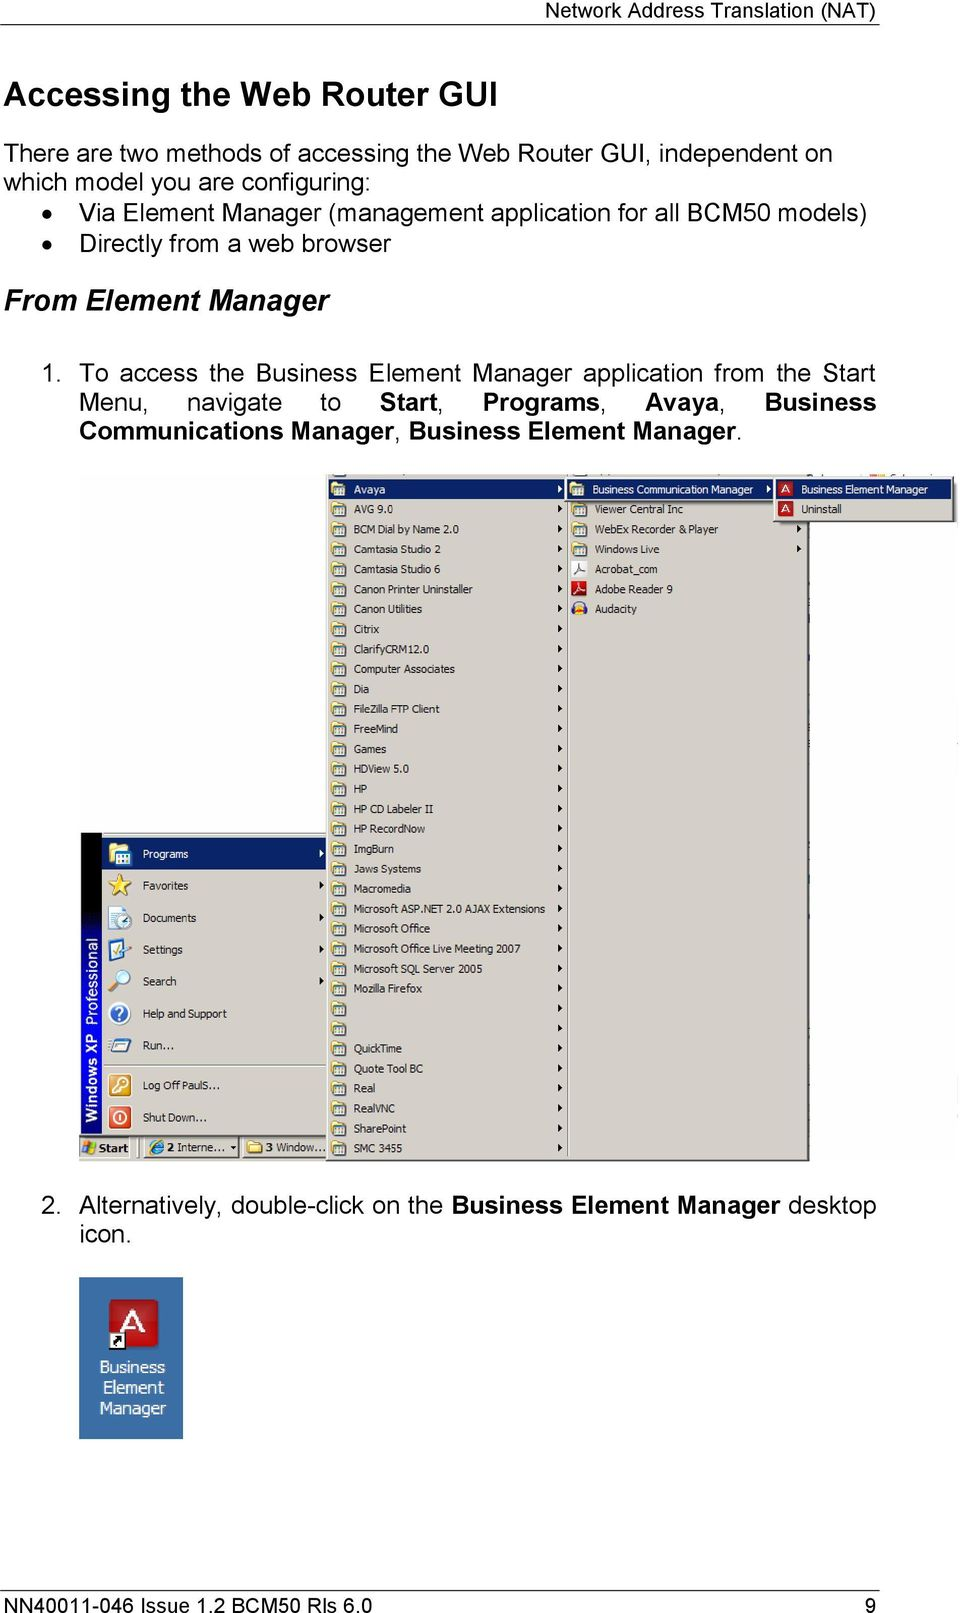 To access the Business Element Manager application from the Start Menu, navigate to Start, Programs, Avaya, Business Communications